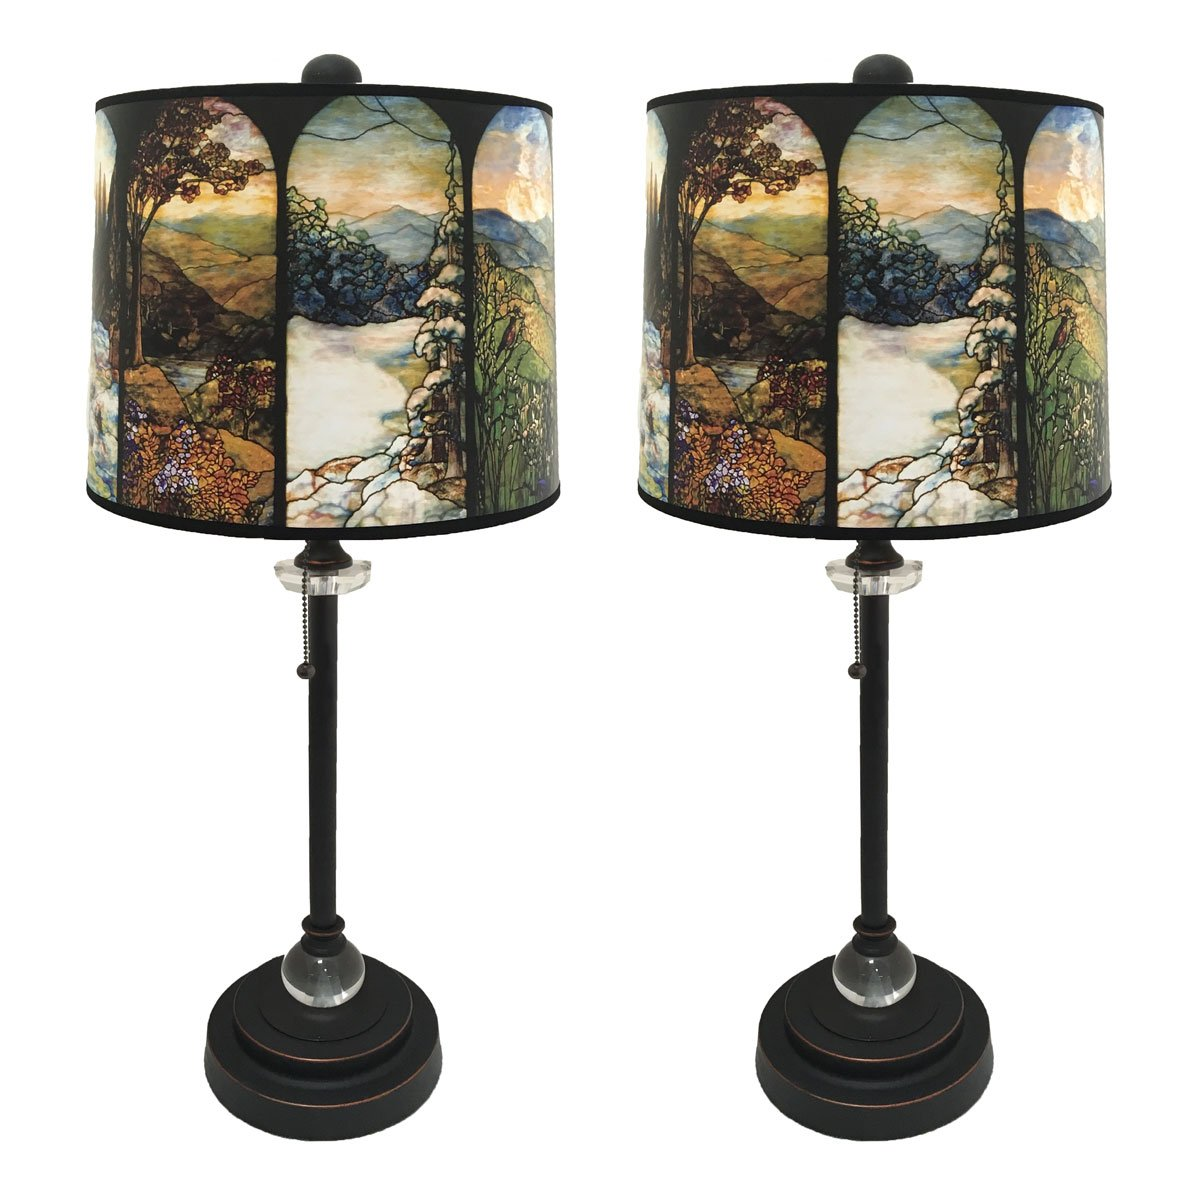 Royal Designs 28'' Crystal and Oil Rub Bronze Buffet Lamp with Four Seasons Stained Glass Design Hard Back Lamp Shade, Set of 2 by Royal Designs, Inc